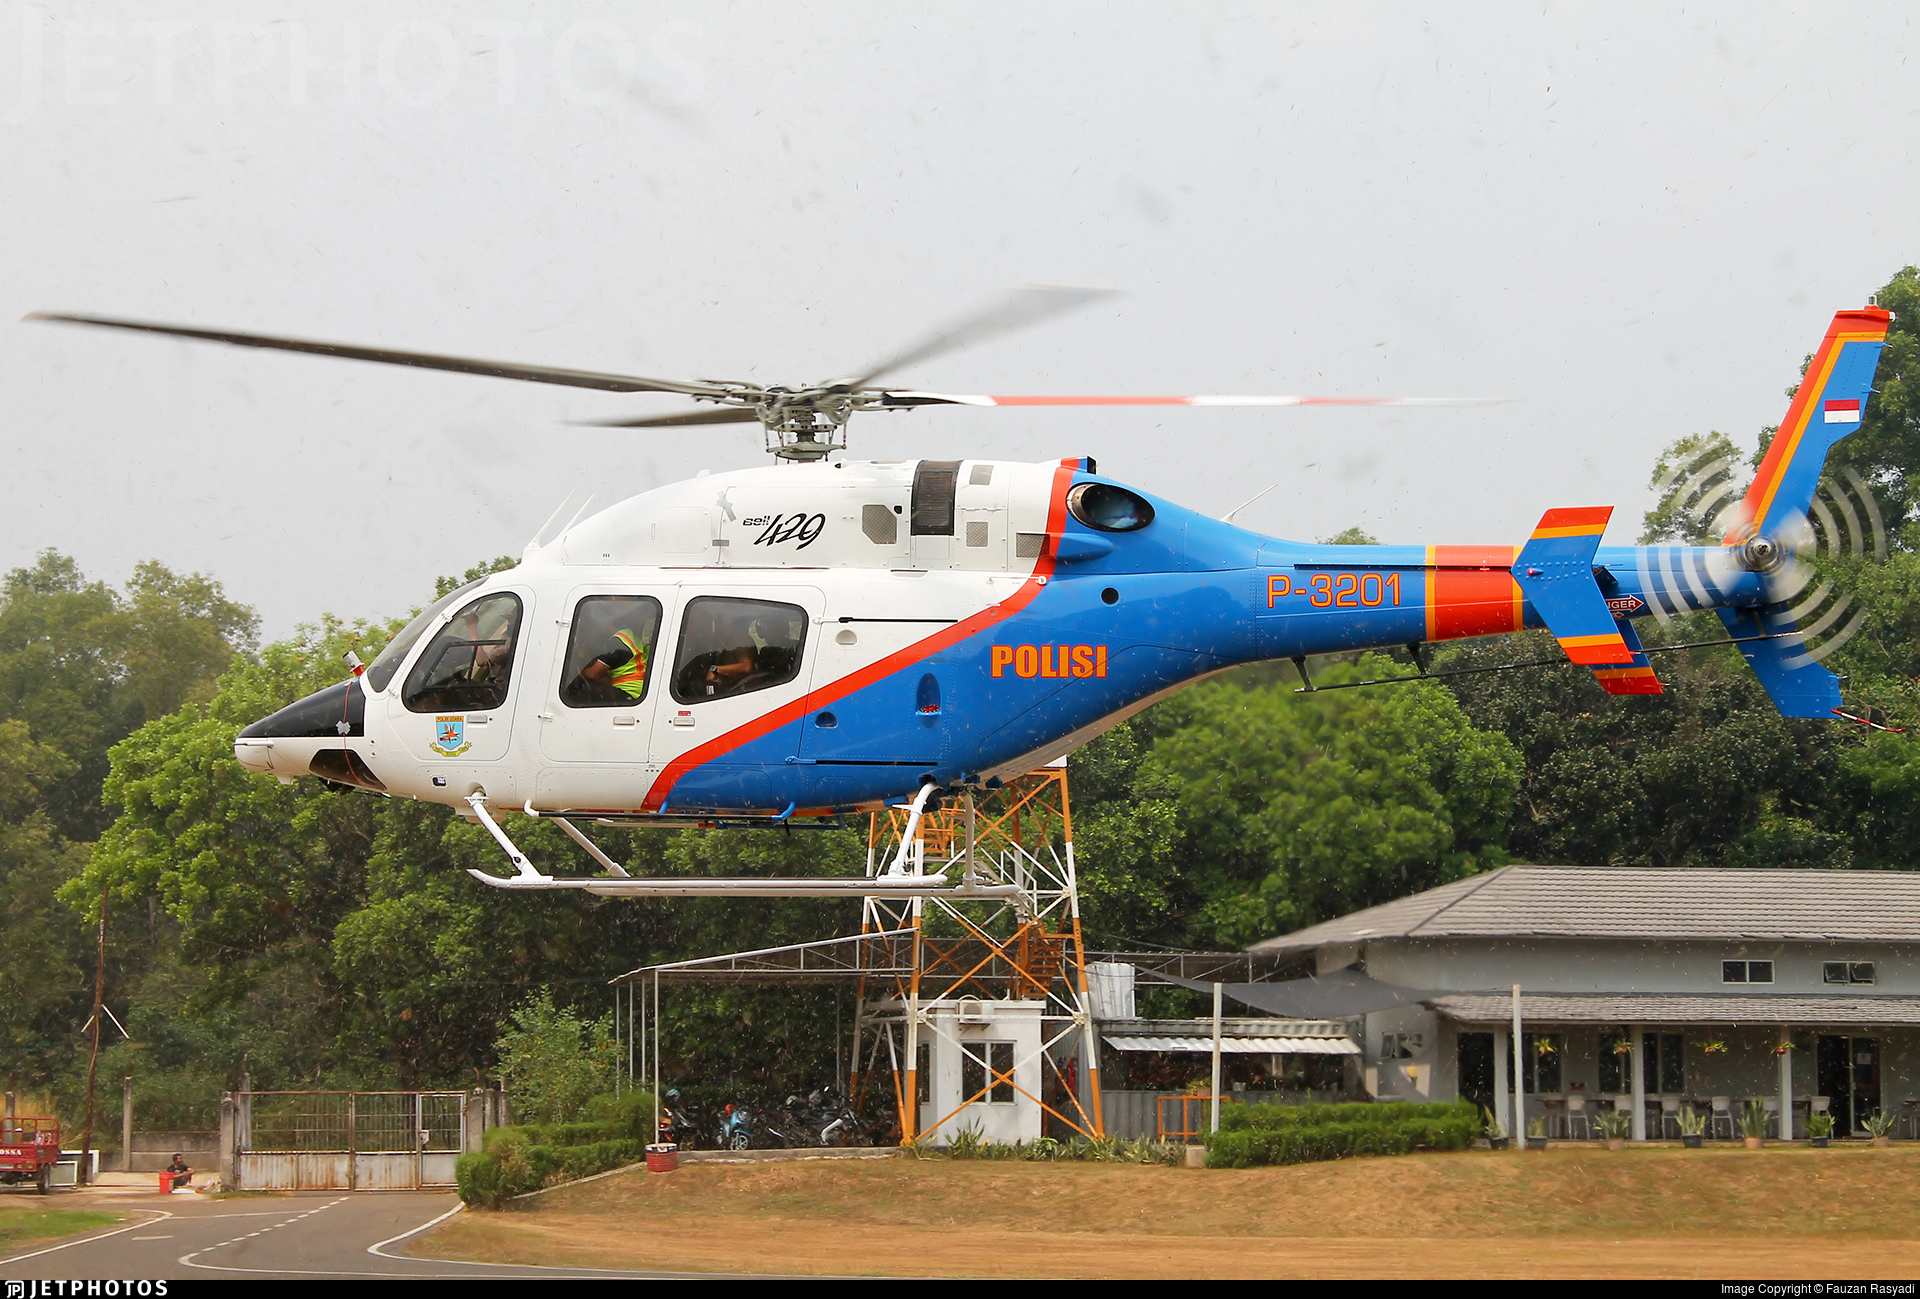 P-3201 - Bell 429 - Indonesia - Police